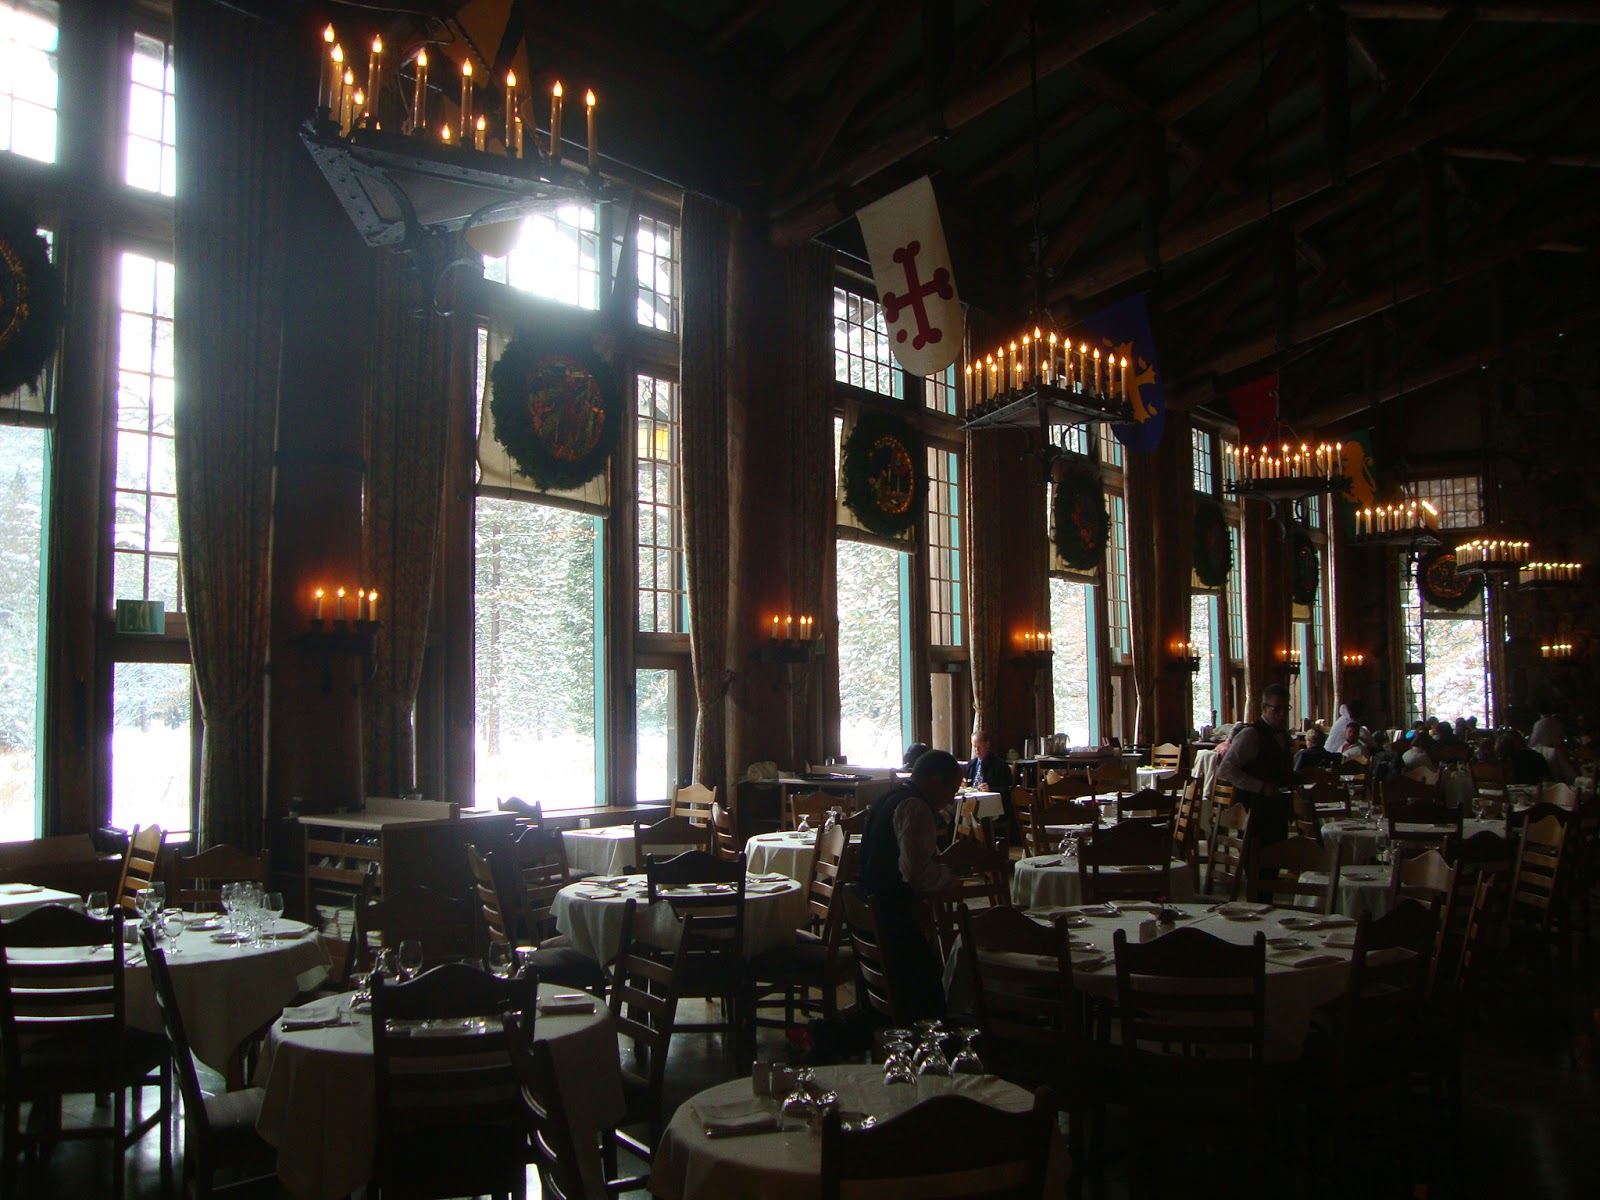 blogkitch photo gallery yosemite national park december 2013 incredible ahwahnee hotel dining room